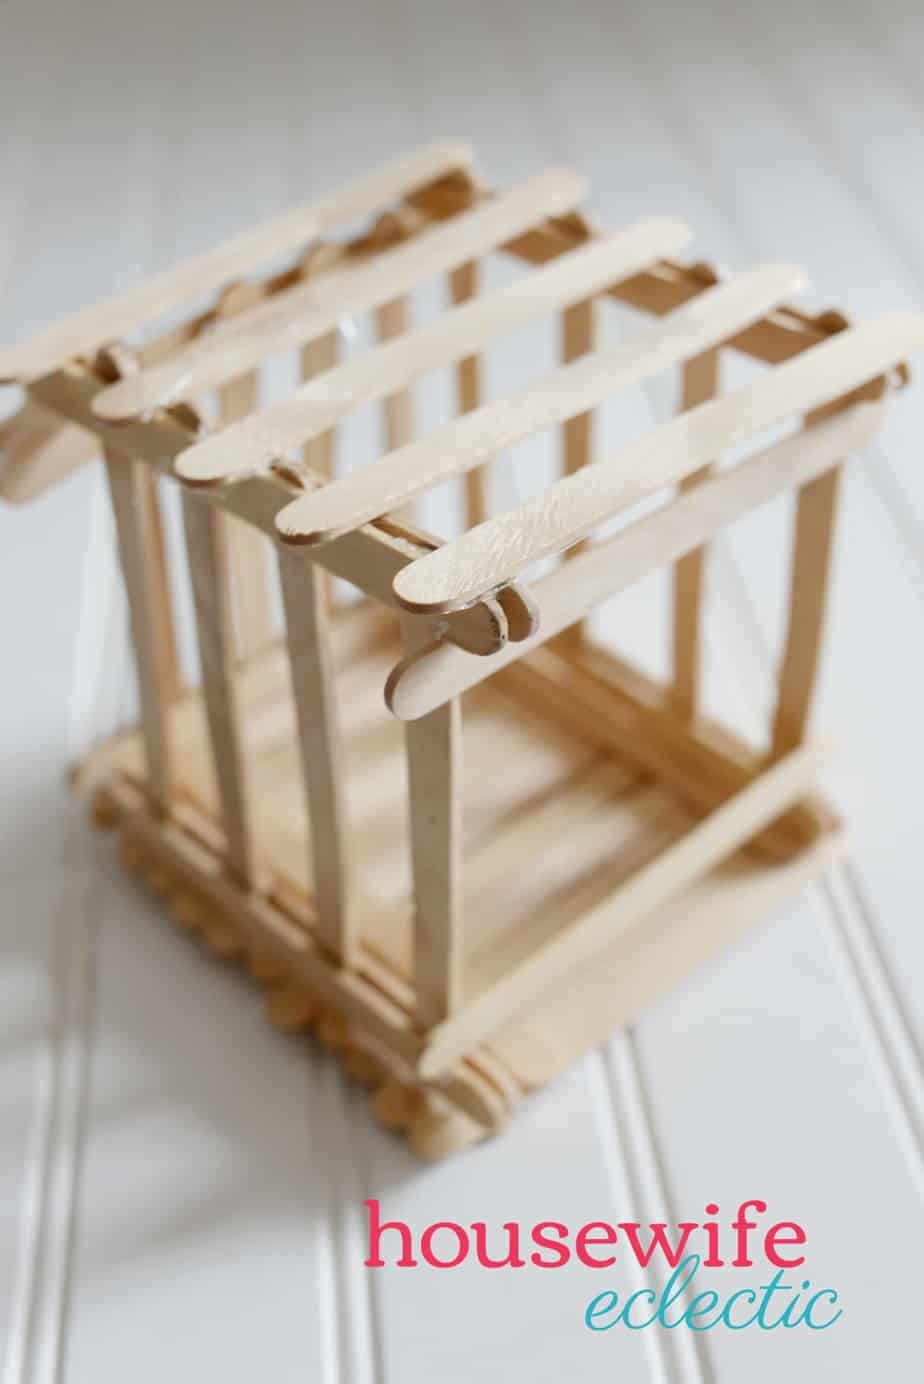 Housewife Eclectic: Popsicle Stick Cage